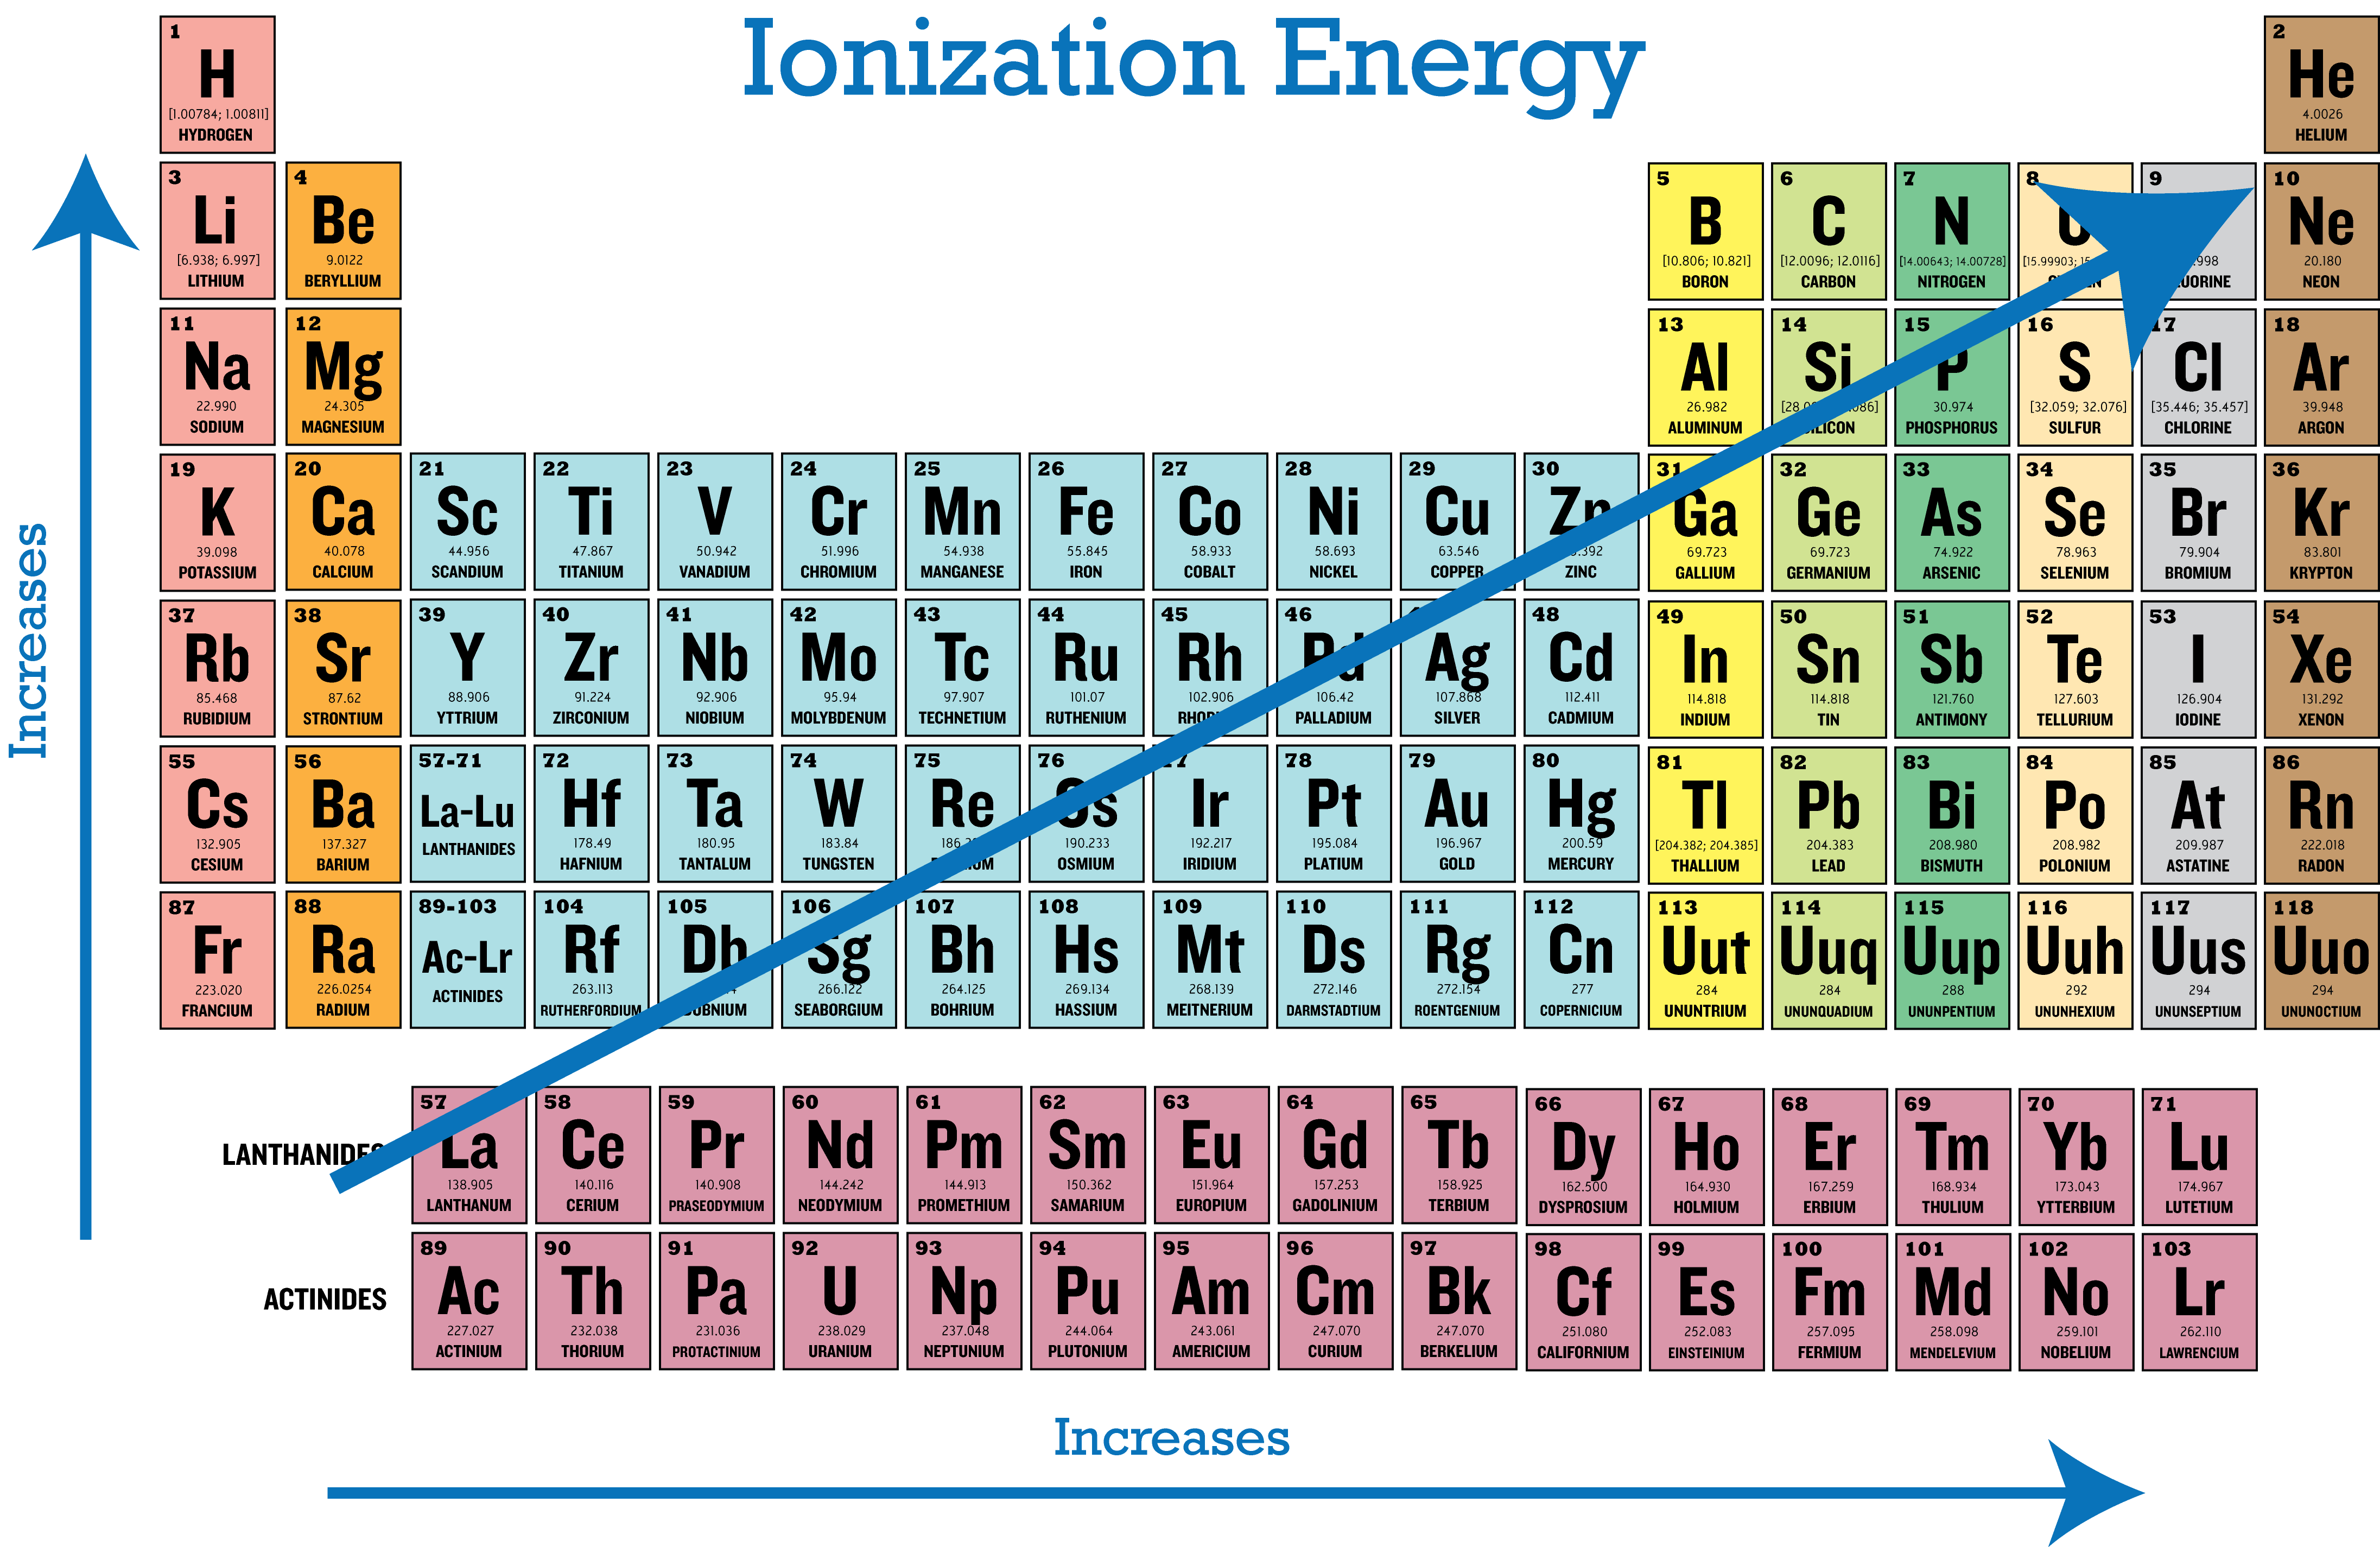 Periodic Trends in Ionization EnergyFirst Ionization Energy Trend